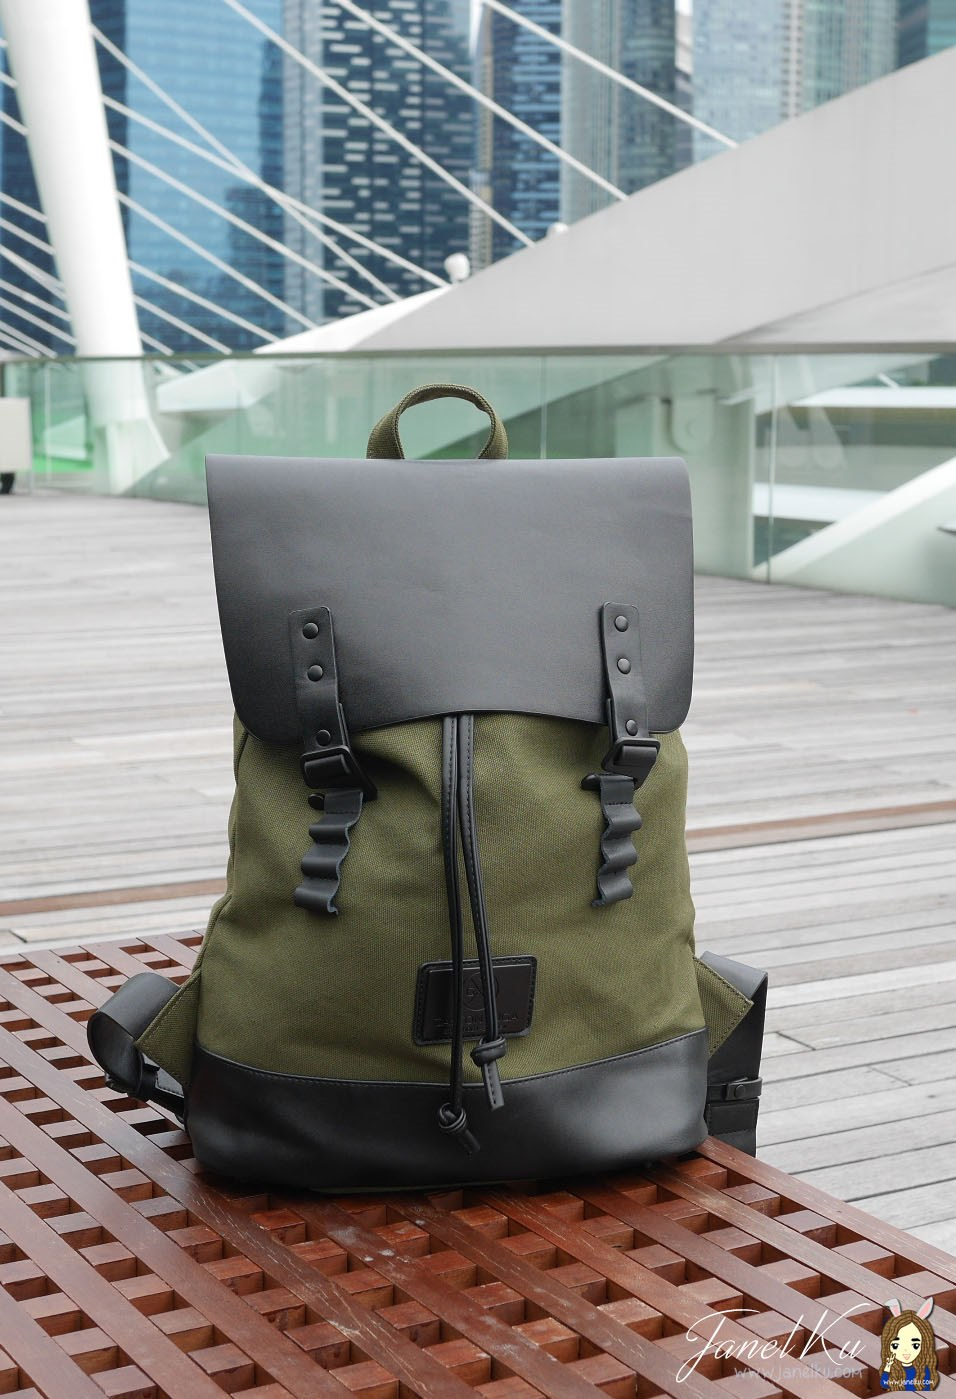 Gaston Luga: A Swedish Take on the Modern Fashionista's Backpack